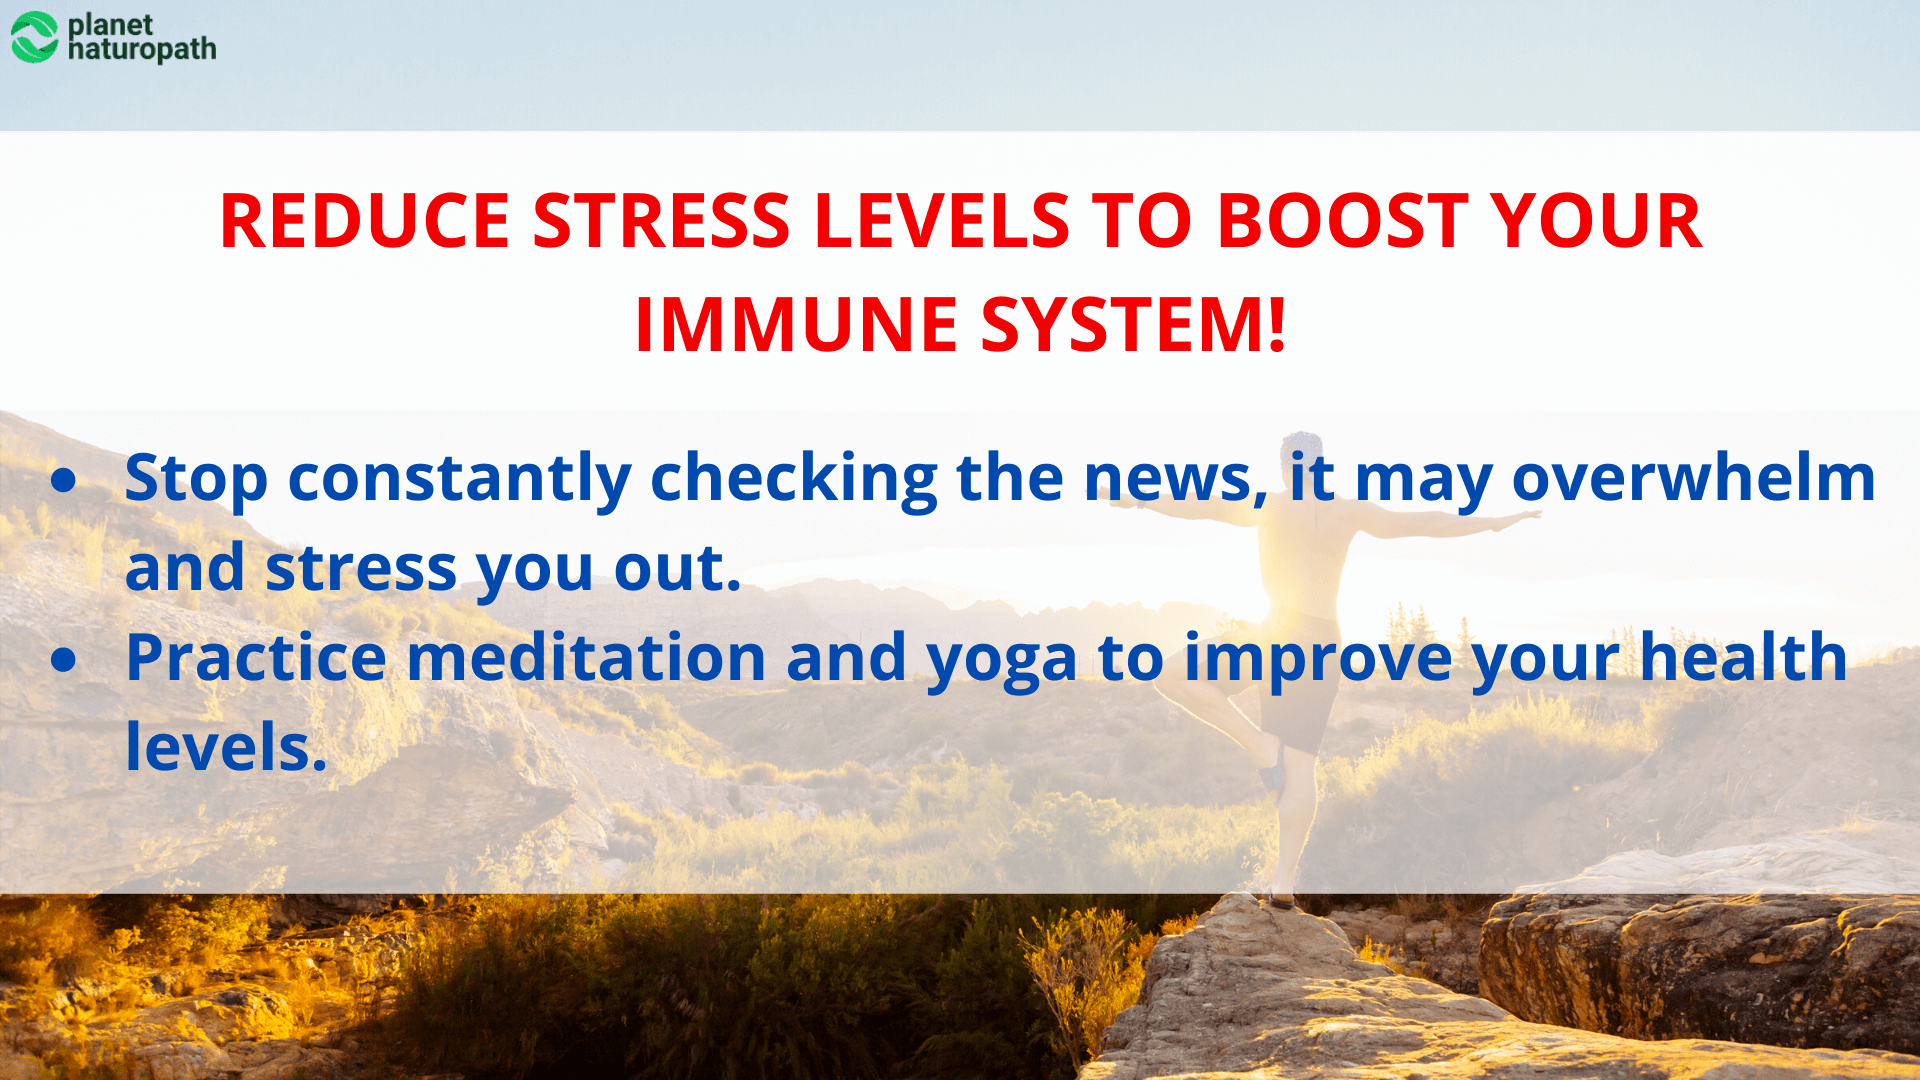 Reduce-stress-levels-to-boost-your-immune-system